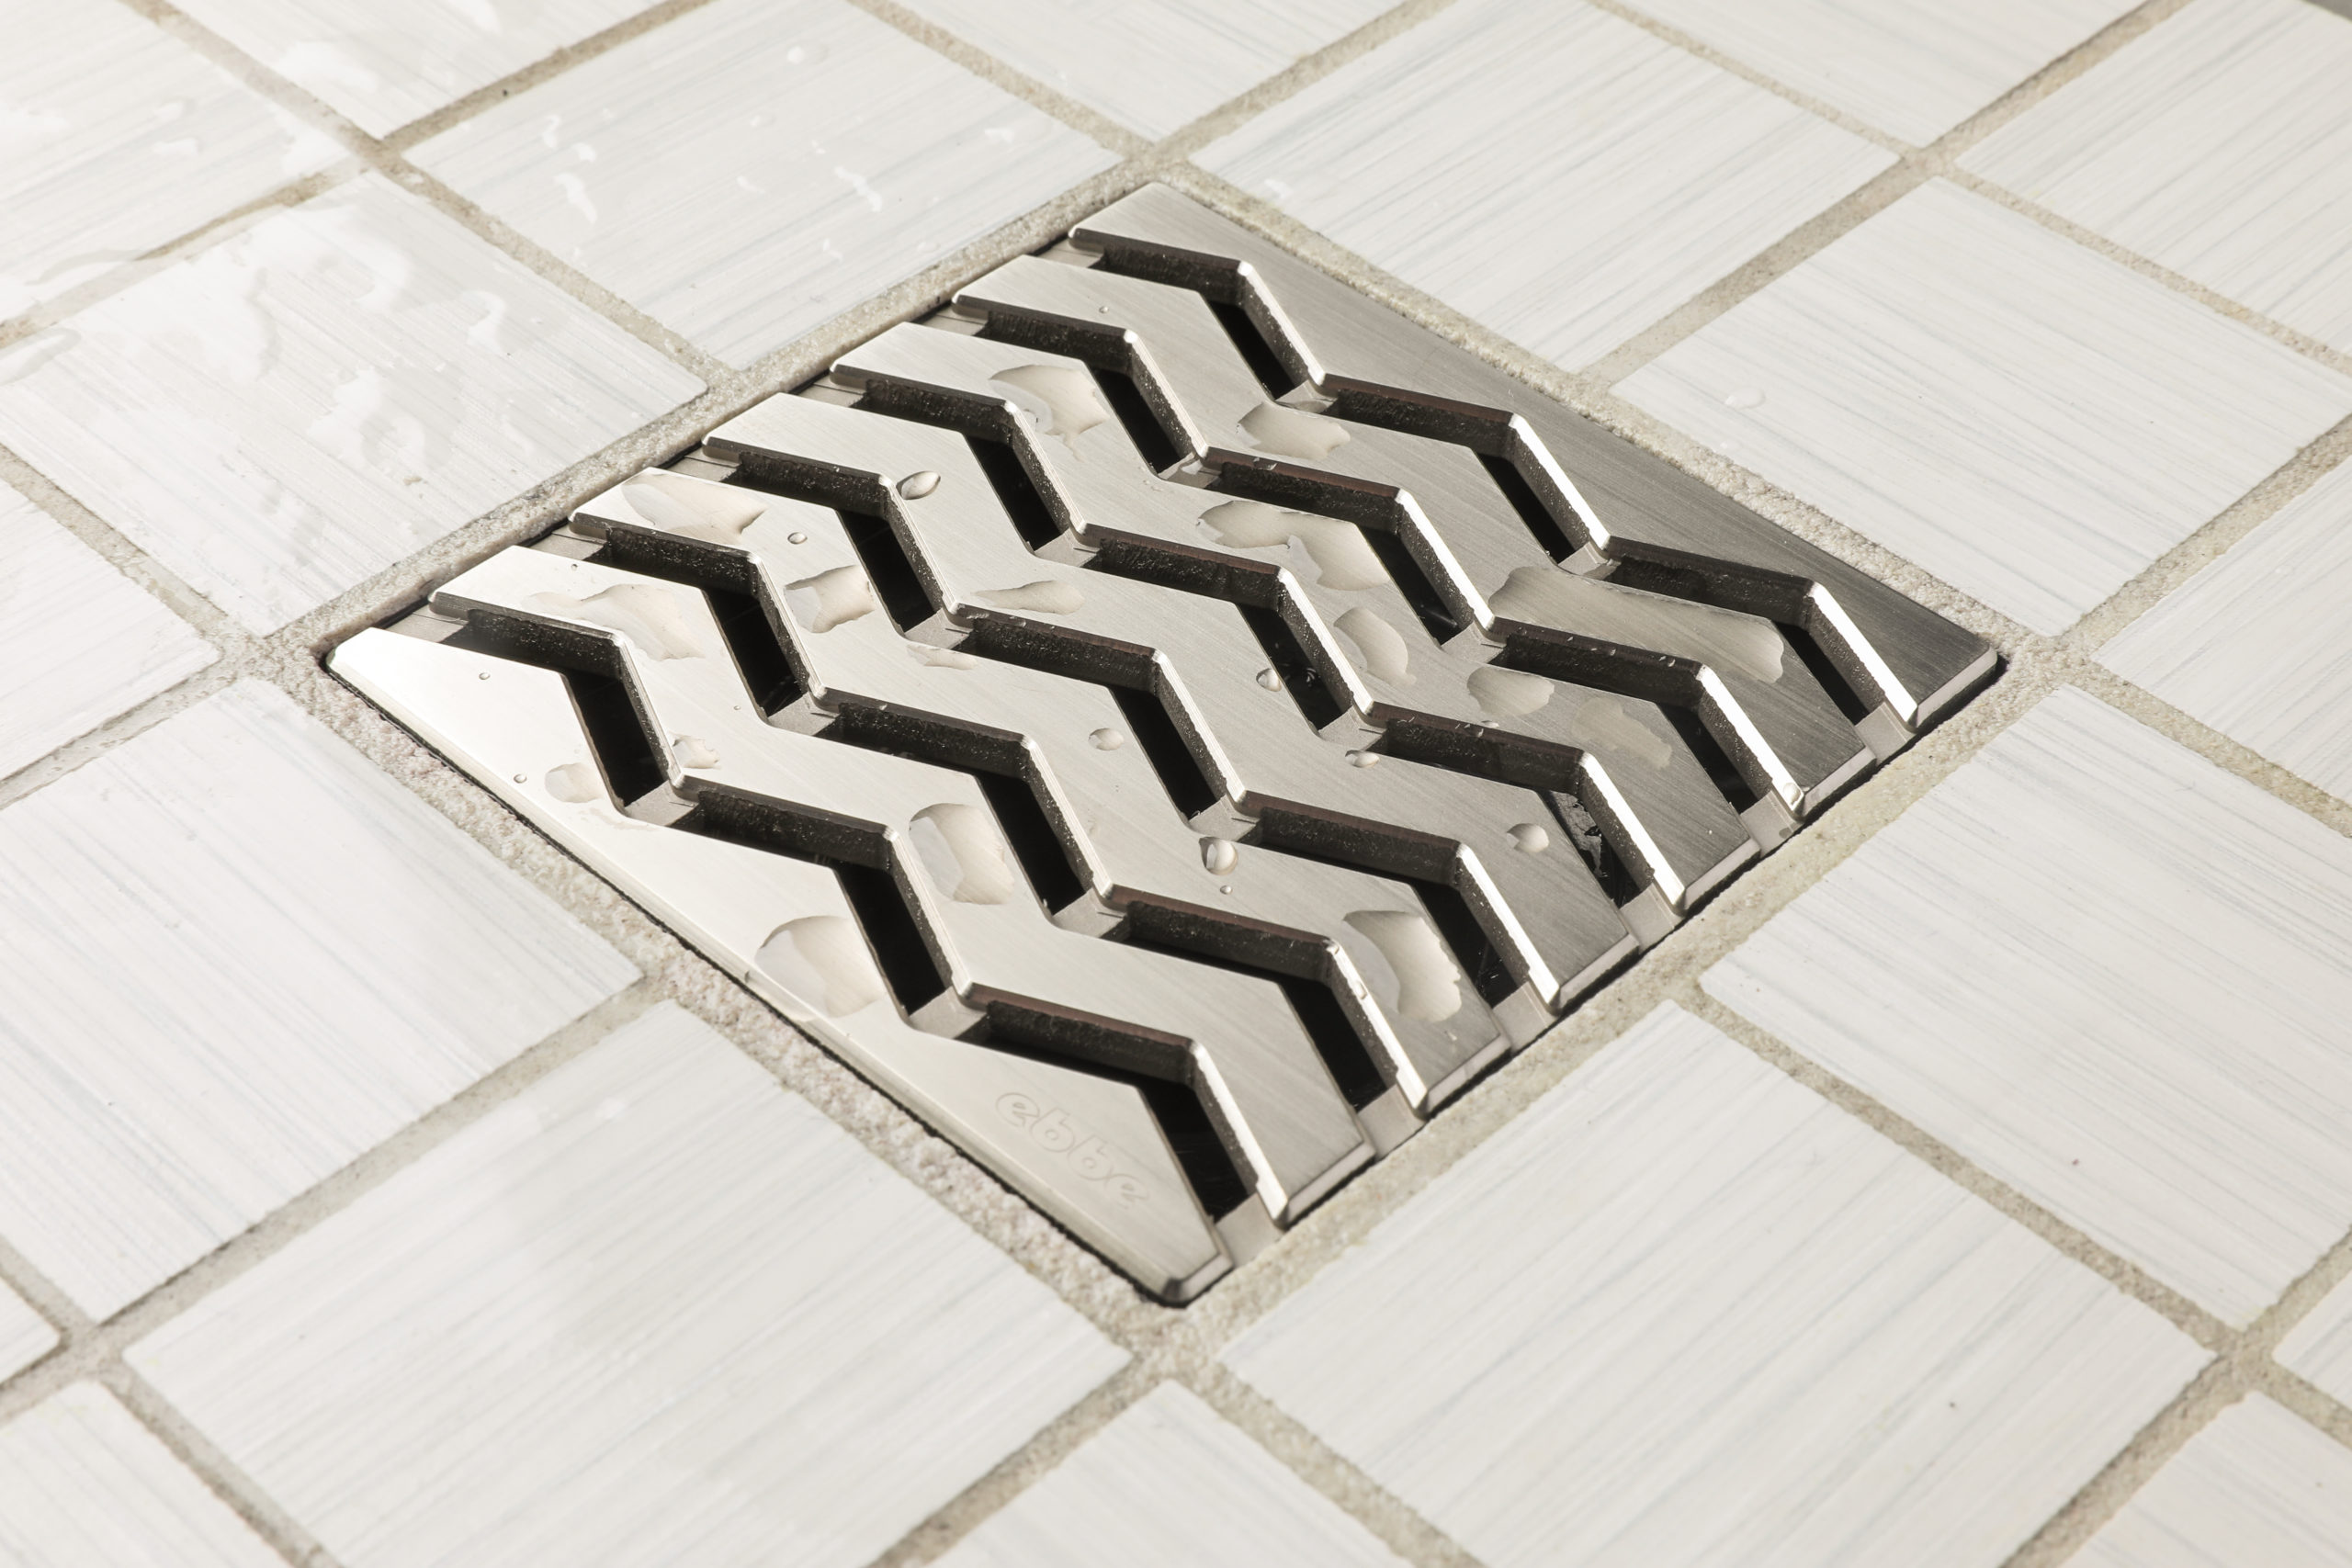 E4816-BN - Ebbe UNIQUE Drain Cover - TREND - Brushed Nickel - Shower Drain - aw